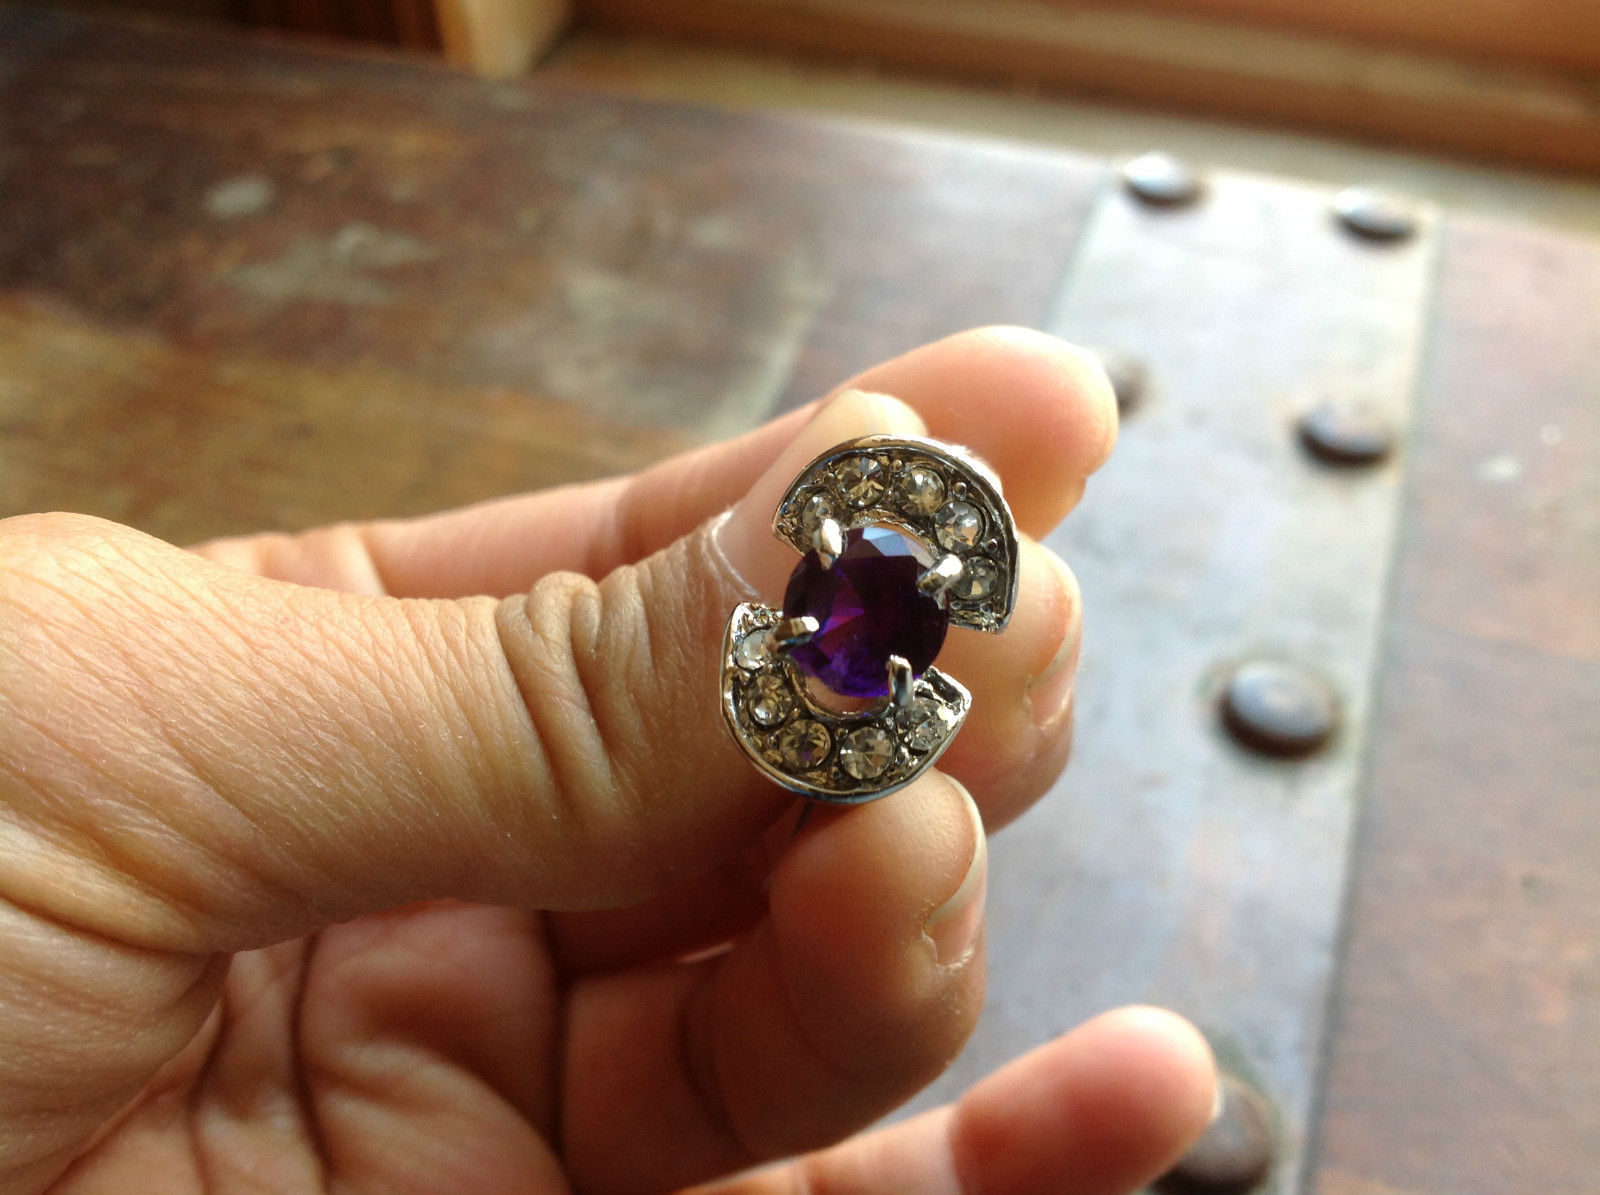 Stainless Steel Ring Purple-Crystal Stone 4 Clear Stones on Side 8.1 Quarter